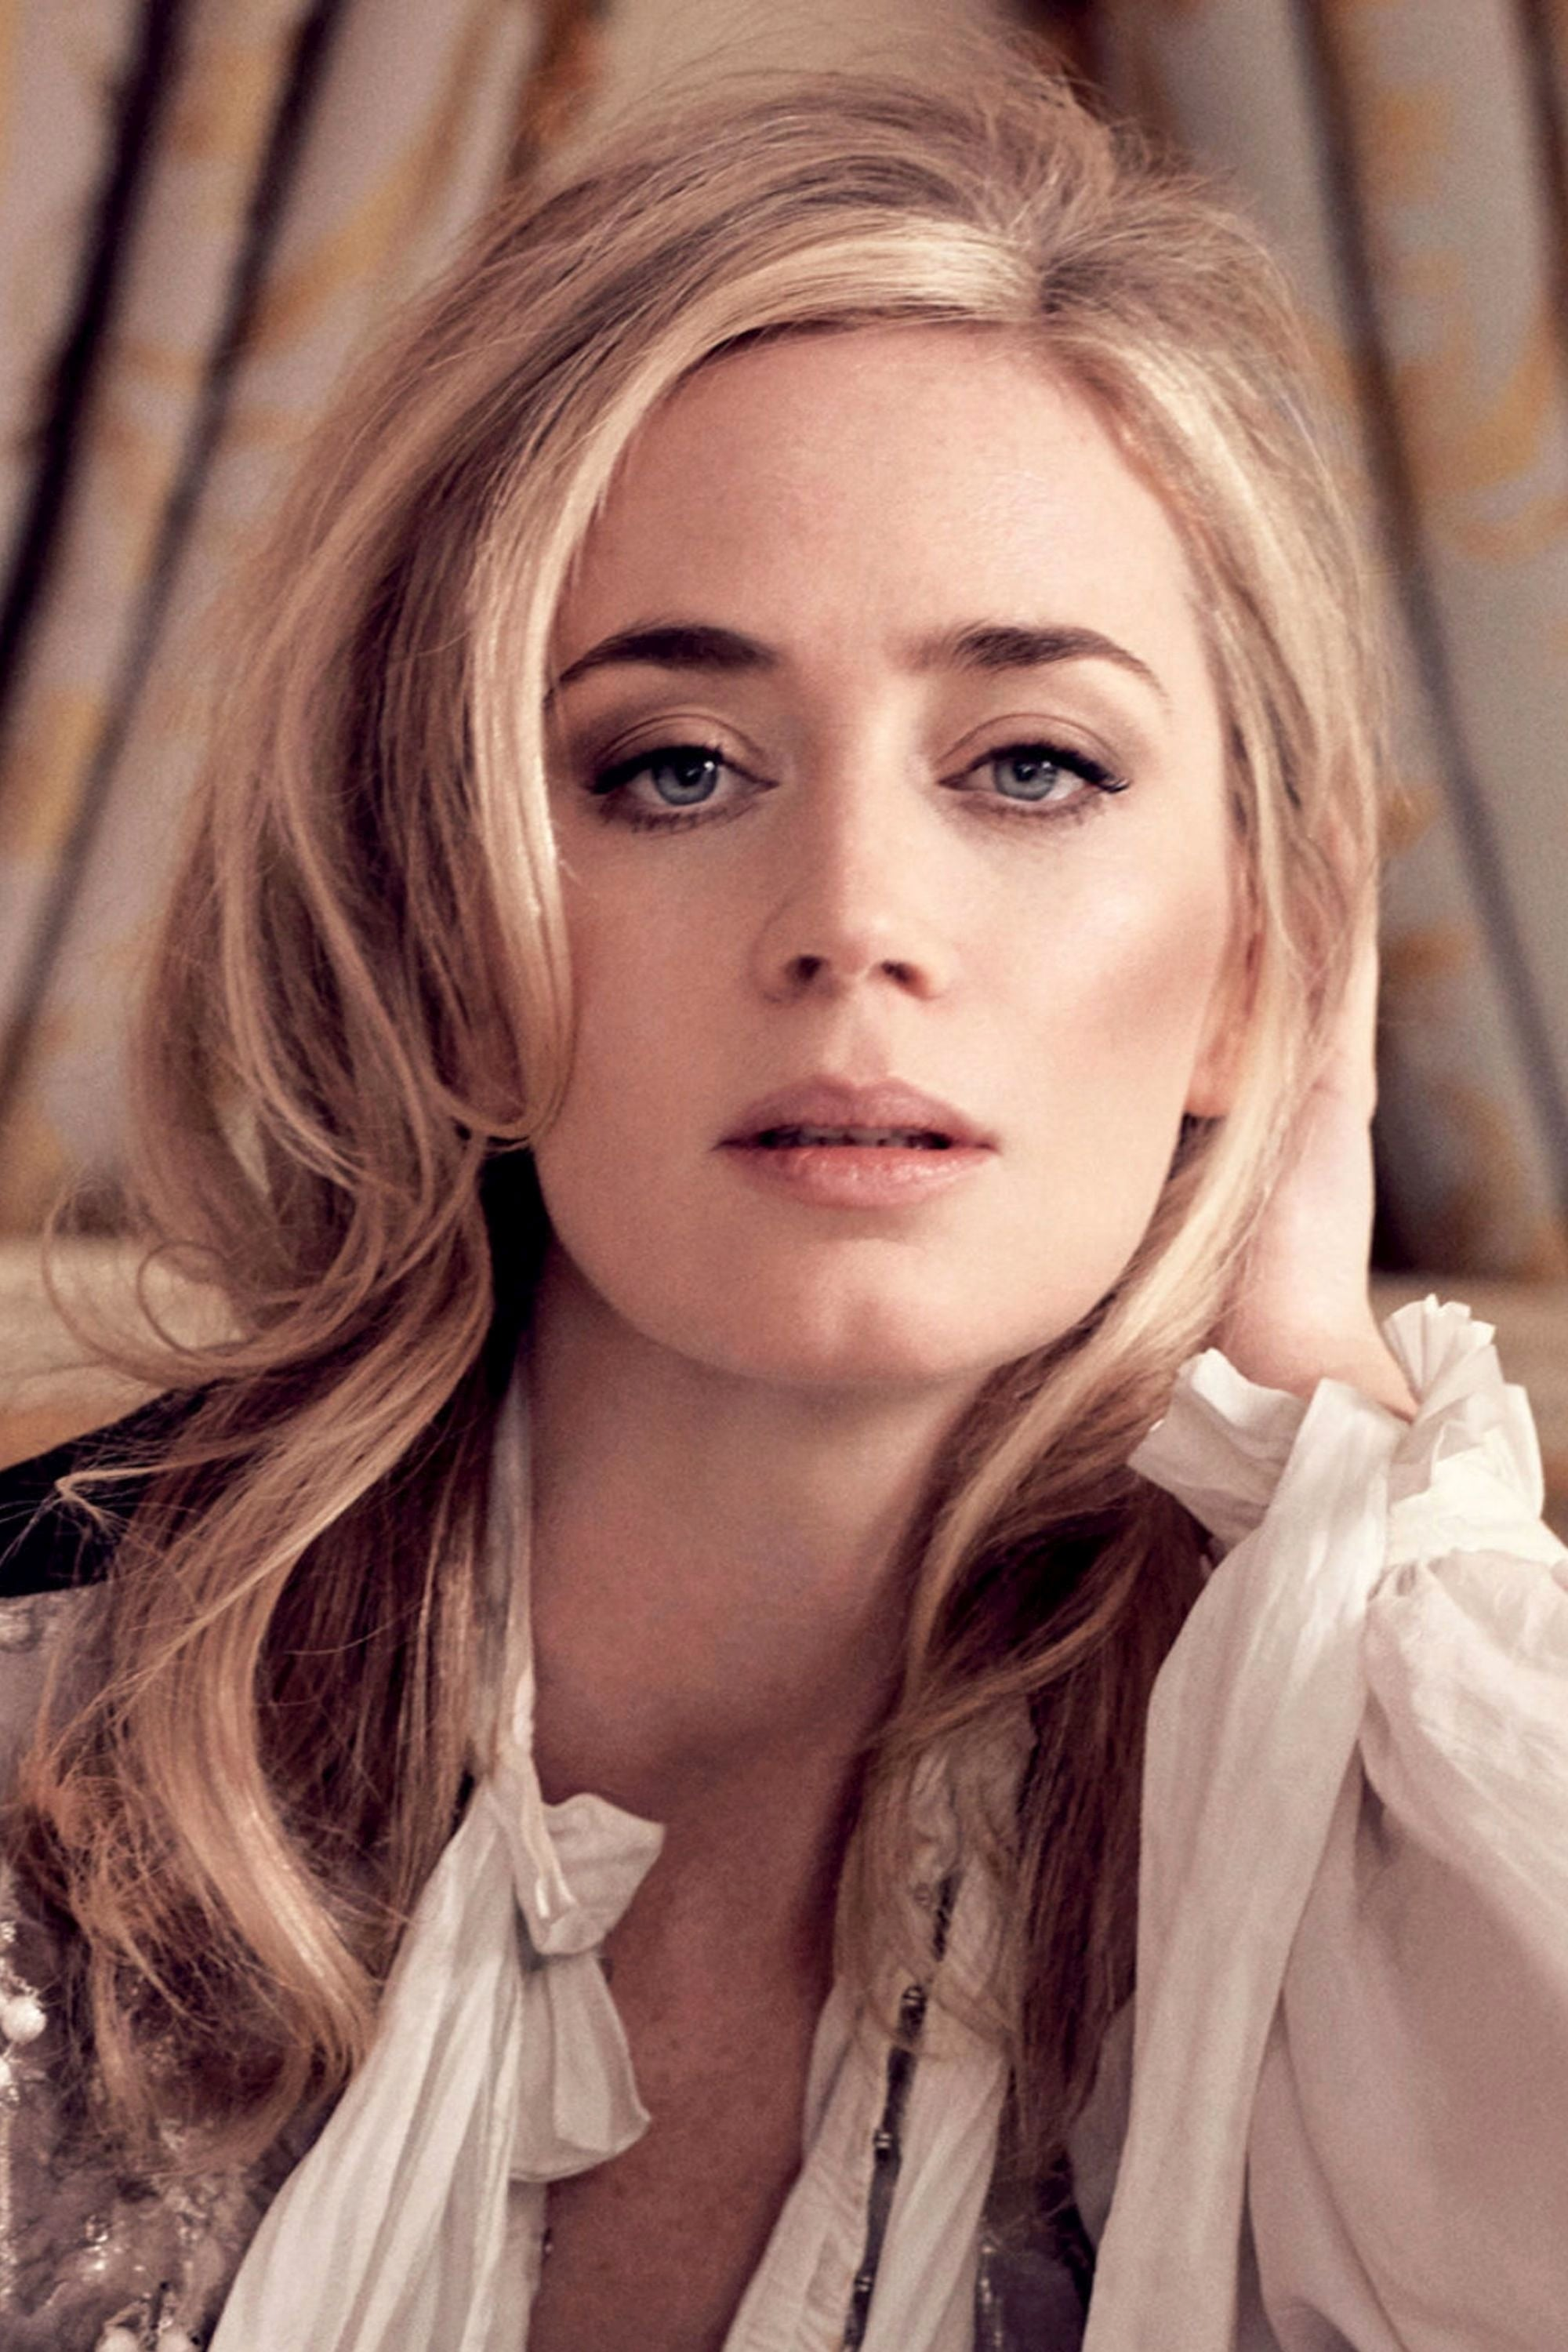 Emily Blunt - Profile Images — The Movie Database (TMDb)